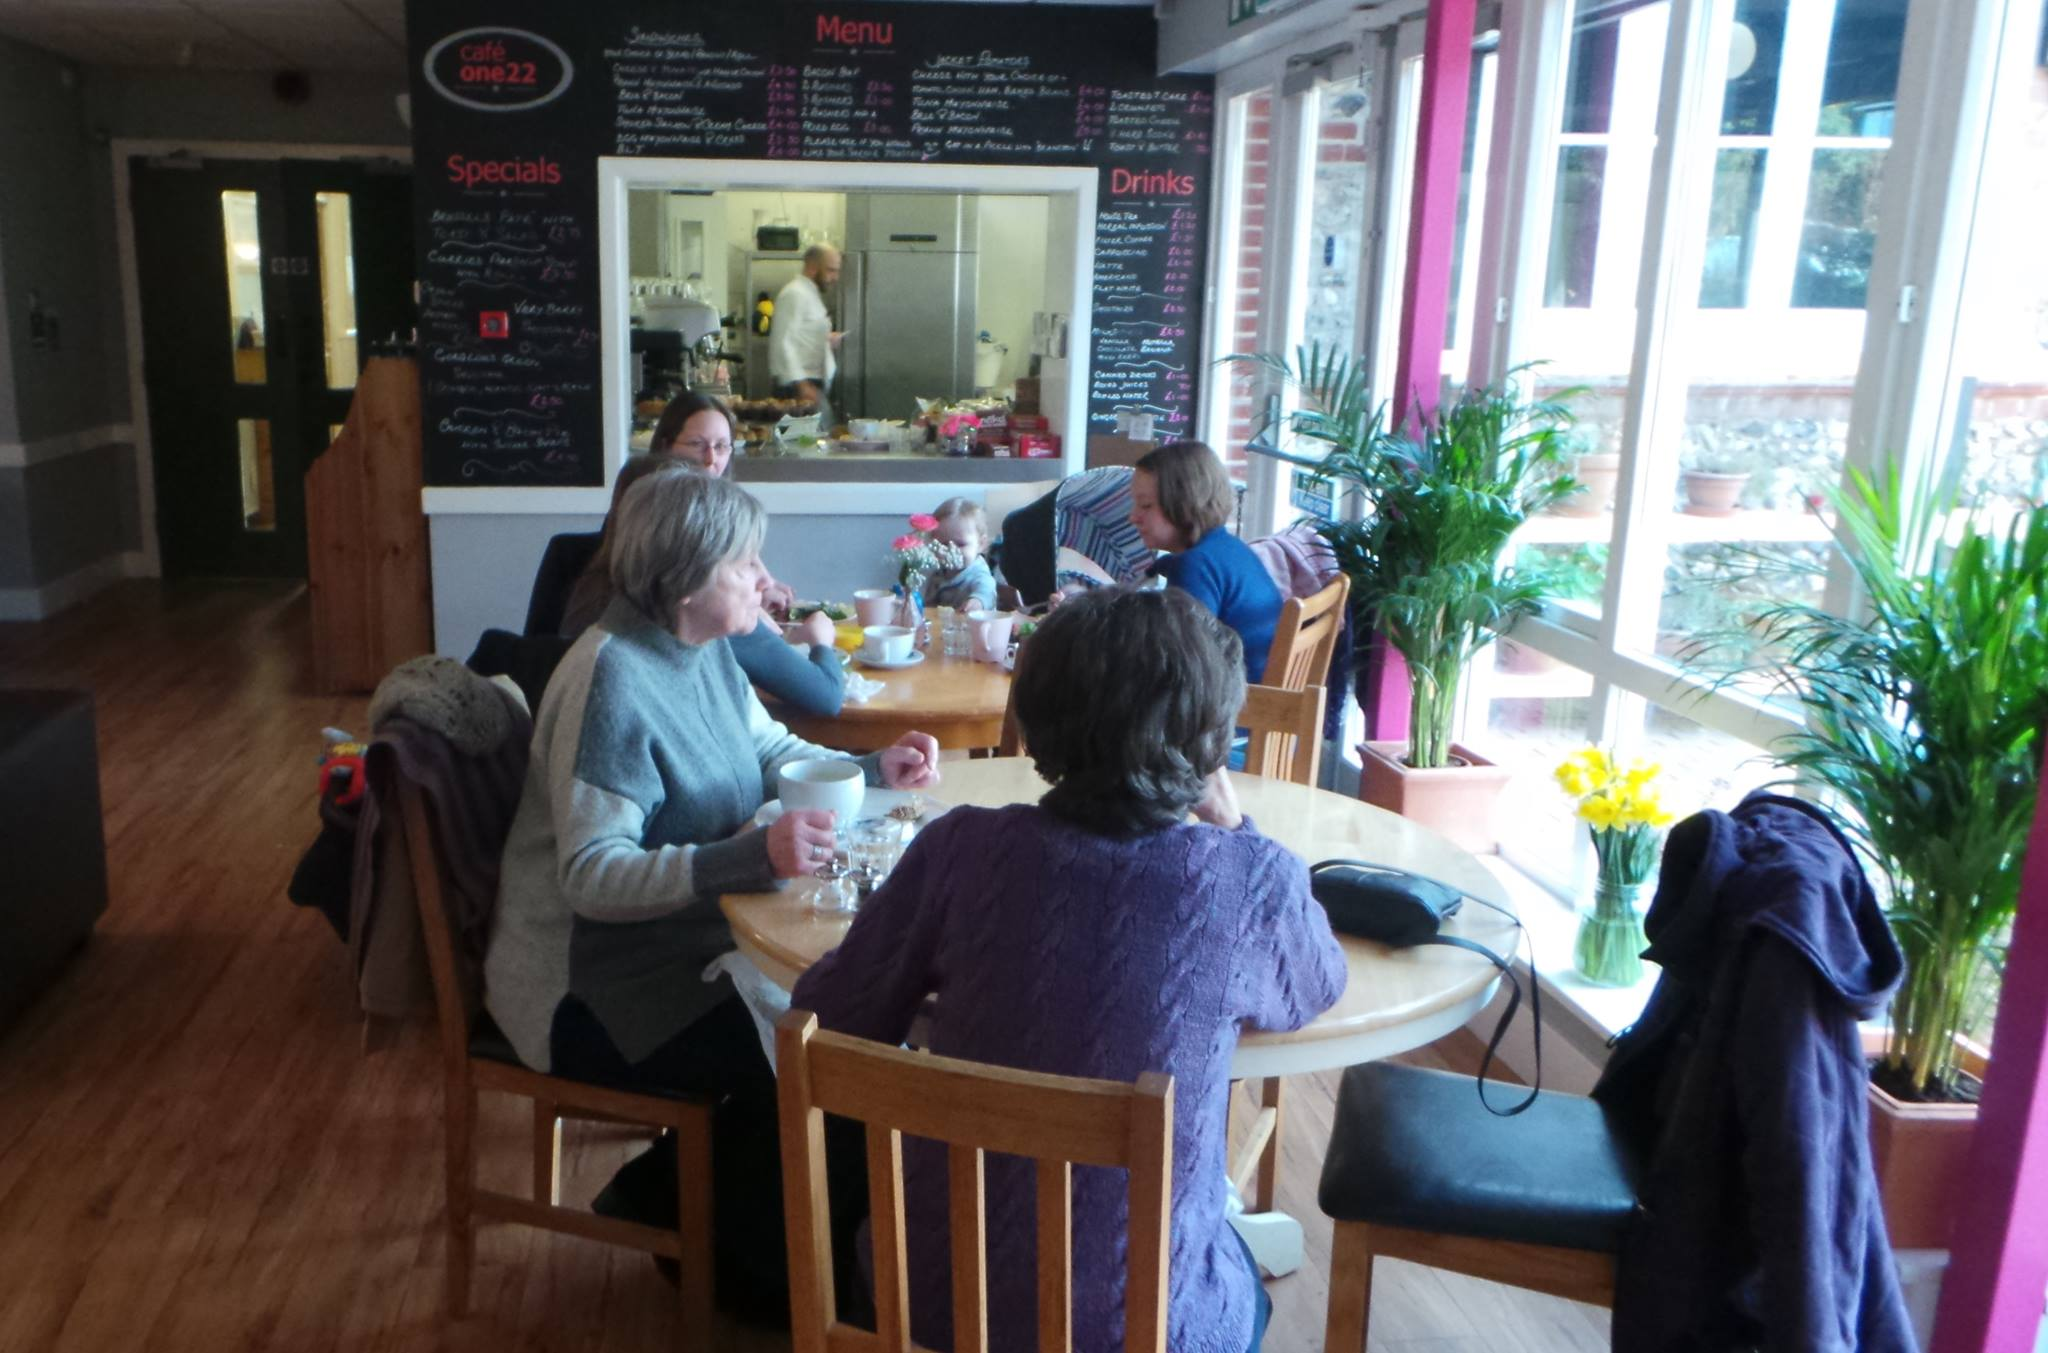 The beautiful onsite cafe means you can sit with a coffee and homemade cake (subject to cafe opening times) or simply sit comfortably whilst your child is in class.